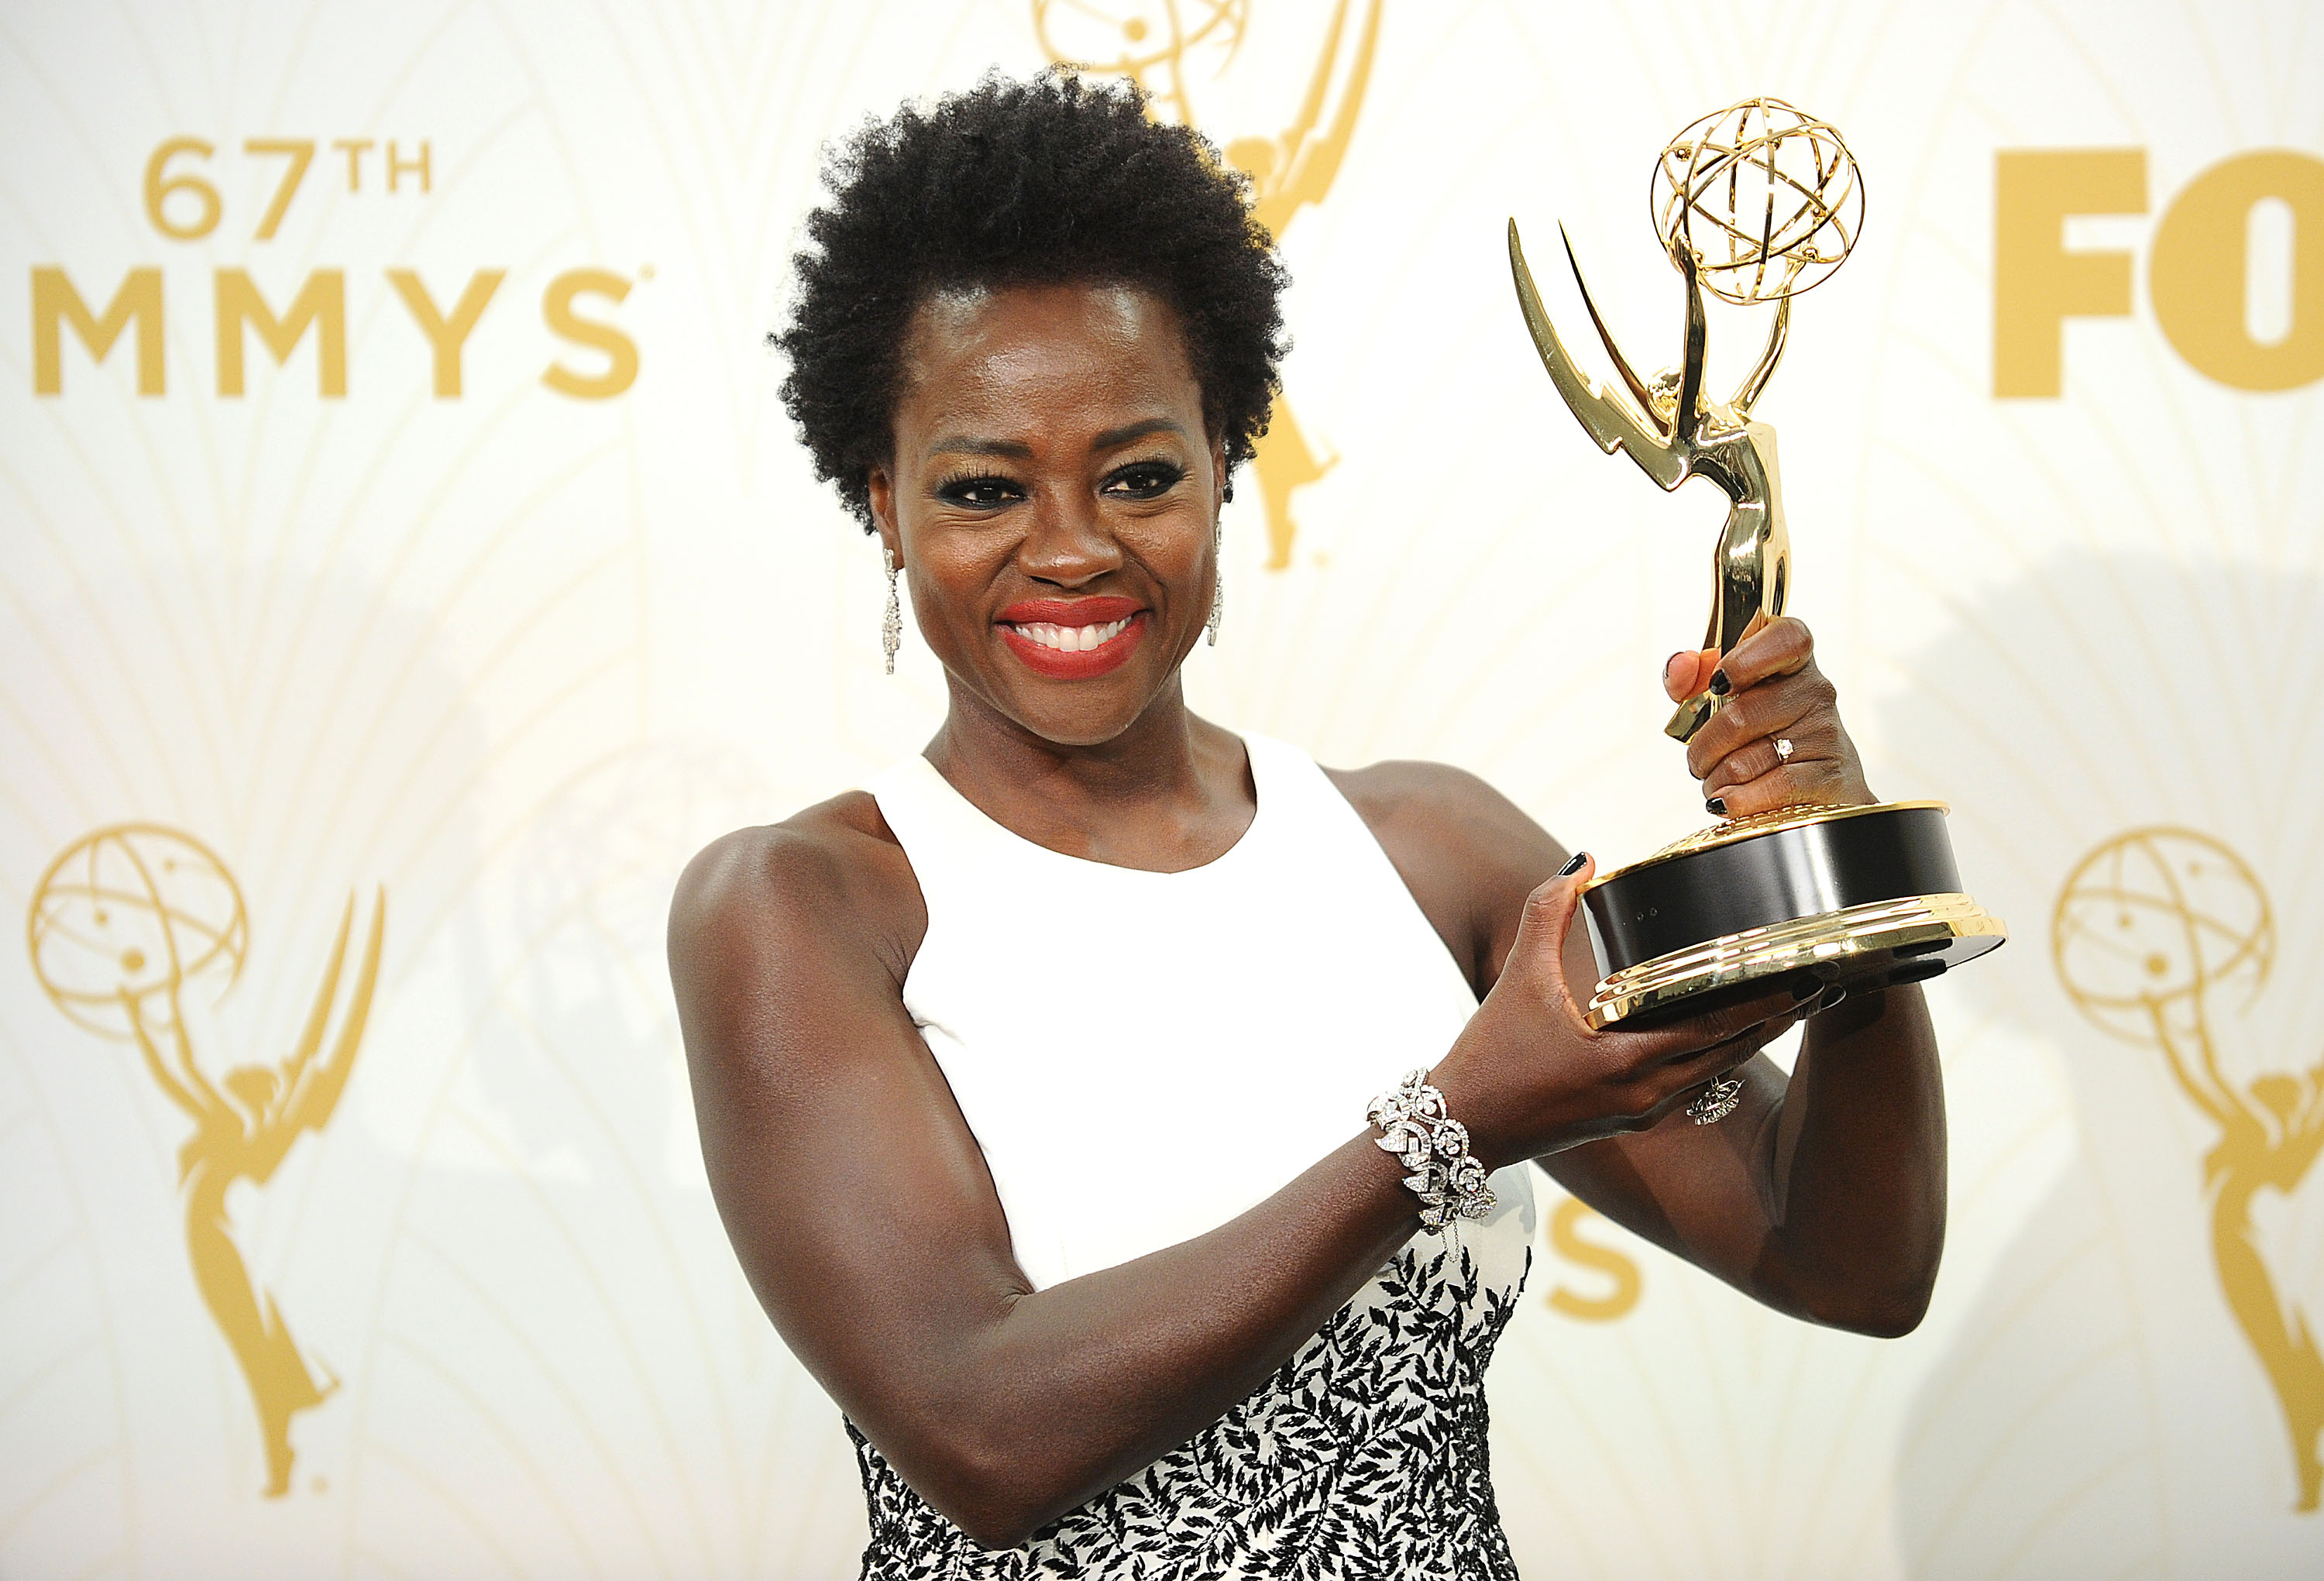 LOS ANGELES, CA - SEPTEMBER 20:  Actress Viola Davis poses in the press room at the 67th annual Primetime Emmy Awards at Microsoft Theater on September 20, 2015 in Los Angeles, California.  (Photo by Jason LaVeris/FilmMagic)